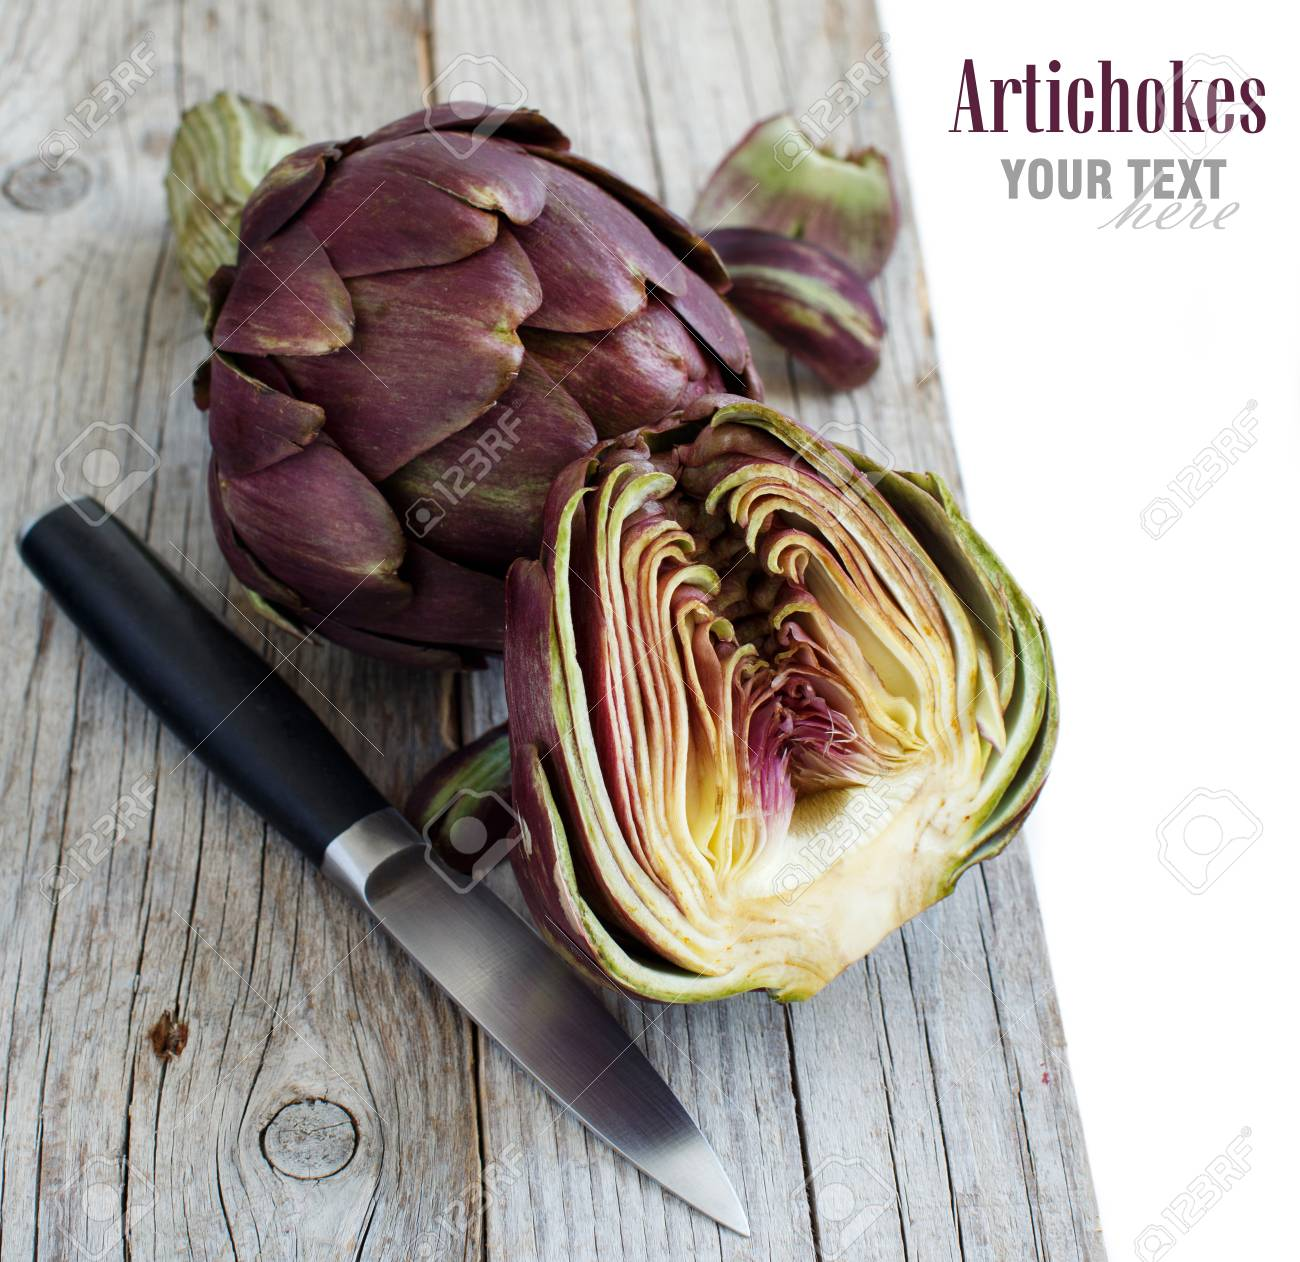 Roman Artichokes on a wooden board with knife Archivio Fotografico - 75336133